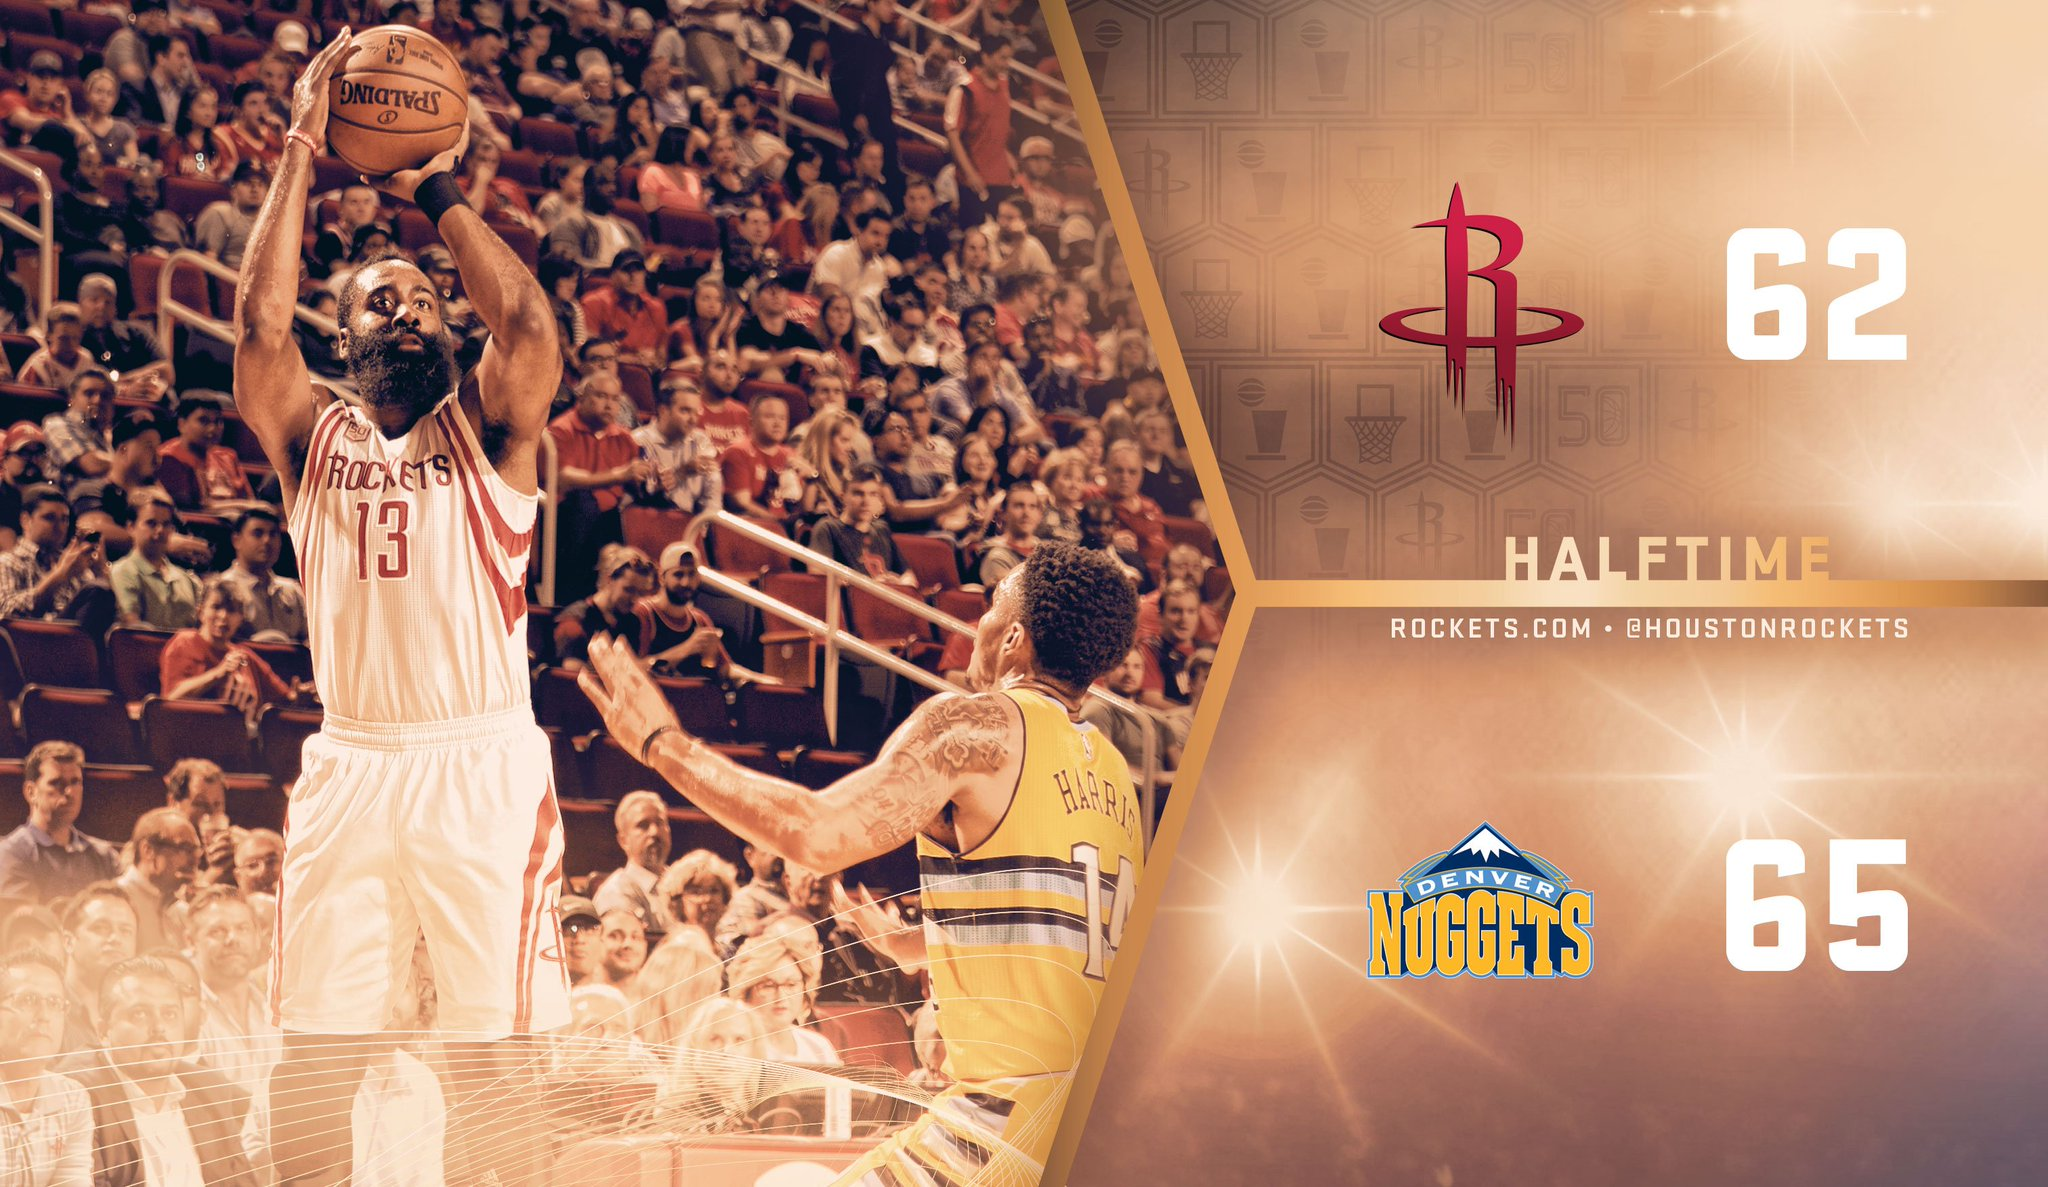 Halftime. #RocketsTakeOver  @JHarden13 with a team-high 20pts. https://t.co/cODmjrkU7K